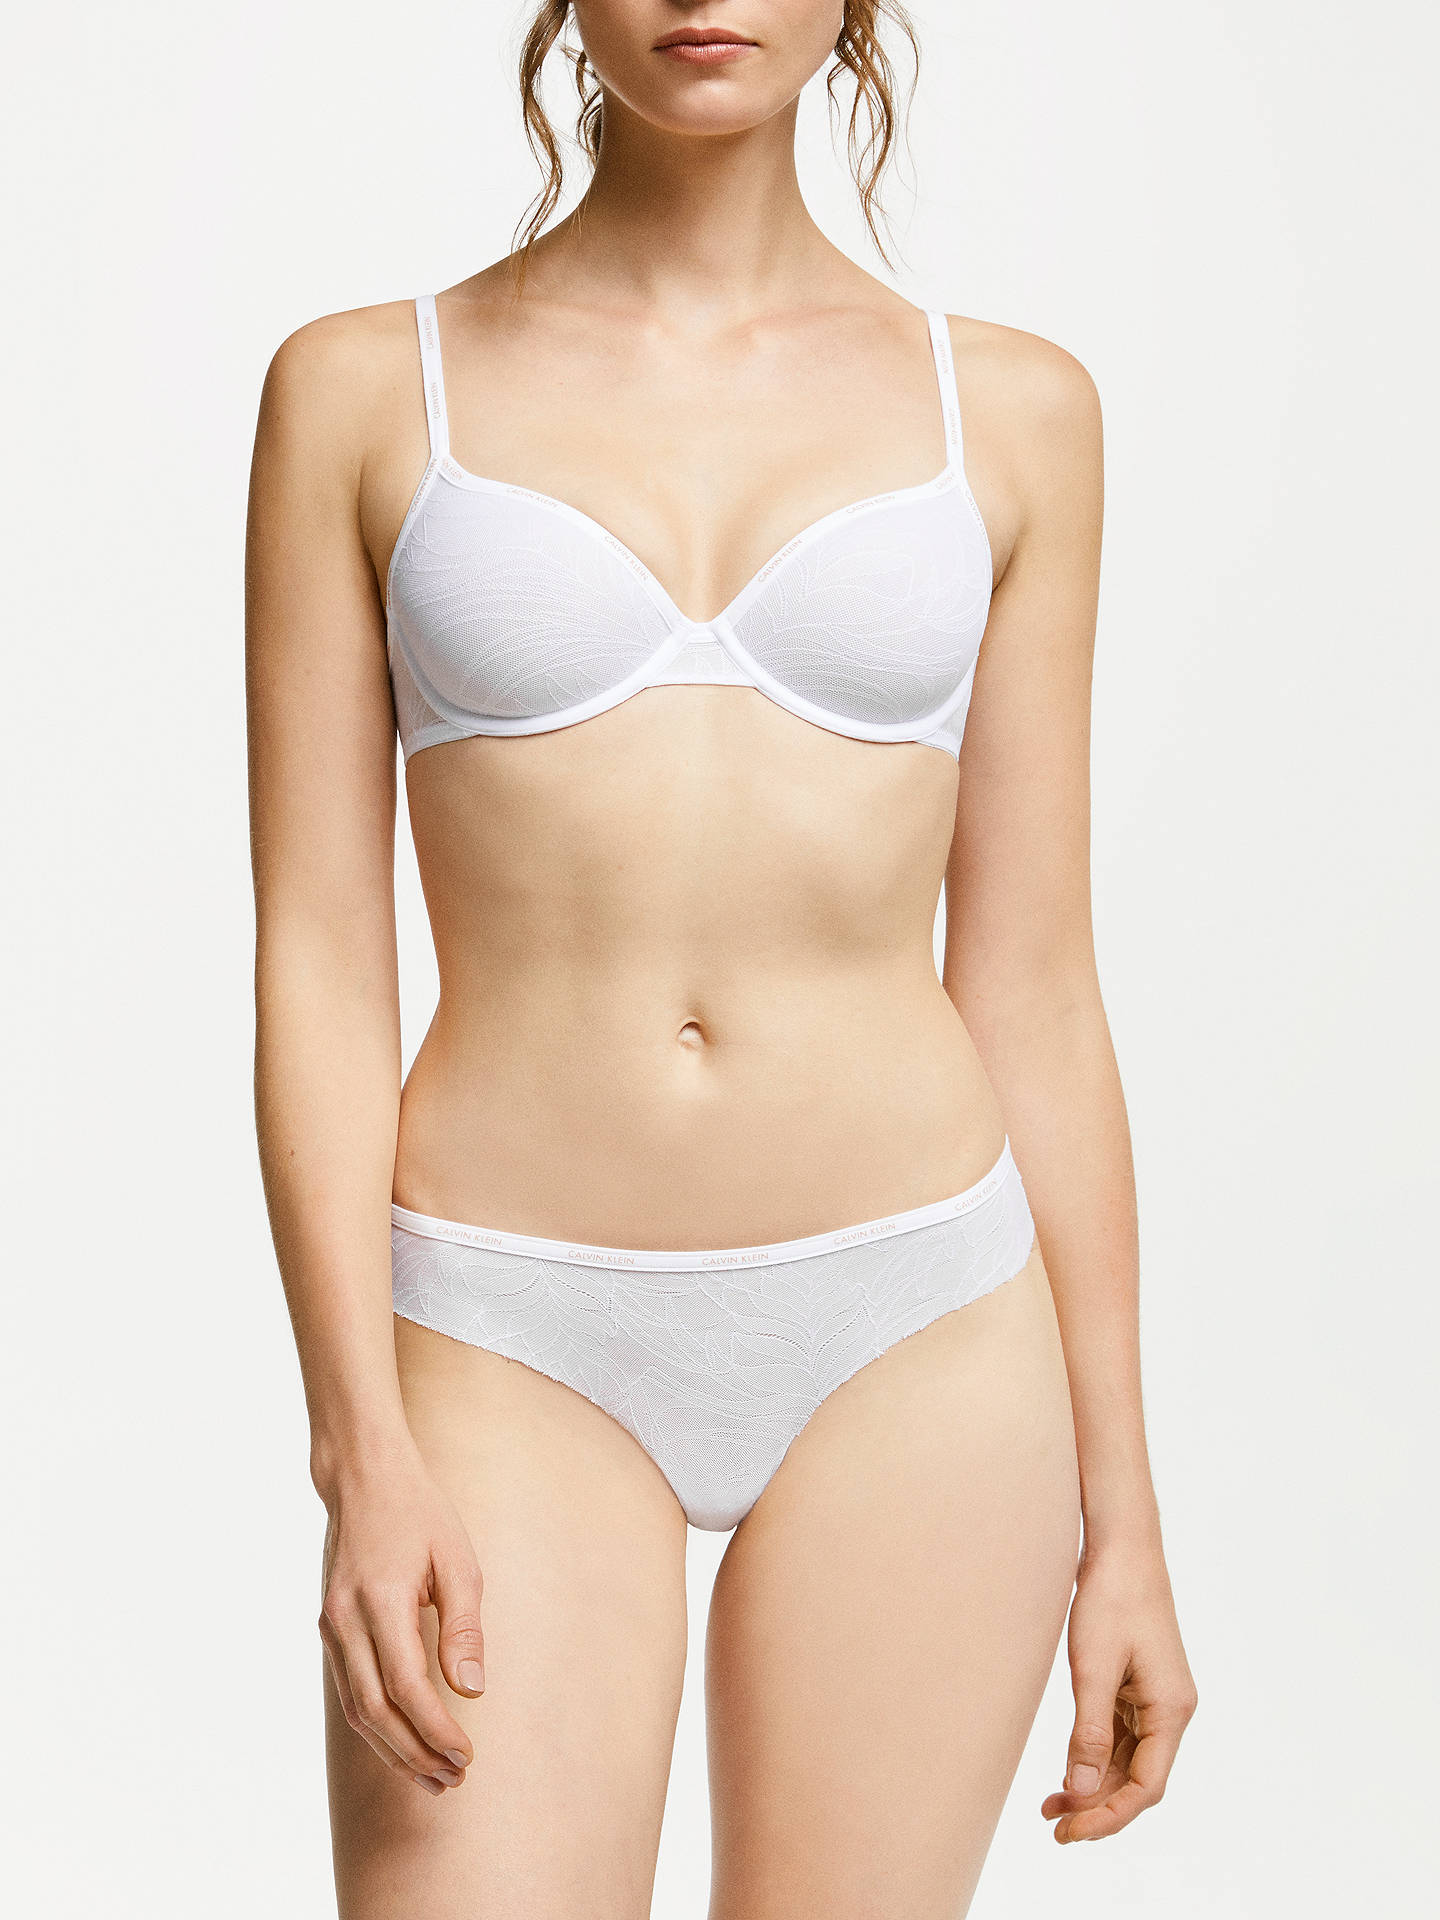 553541242988 ... Buy Calvin Klein Sheer Marquisette Thong, White, M Online at  johnlewis.com ...